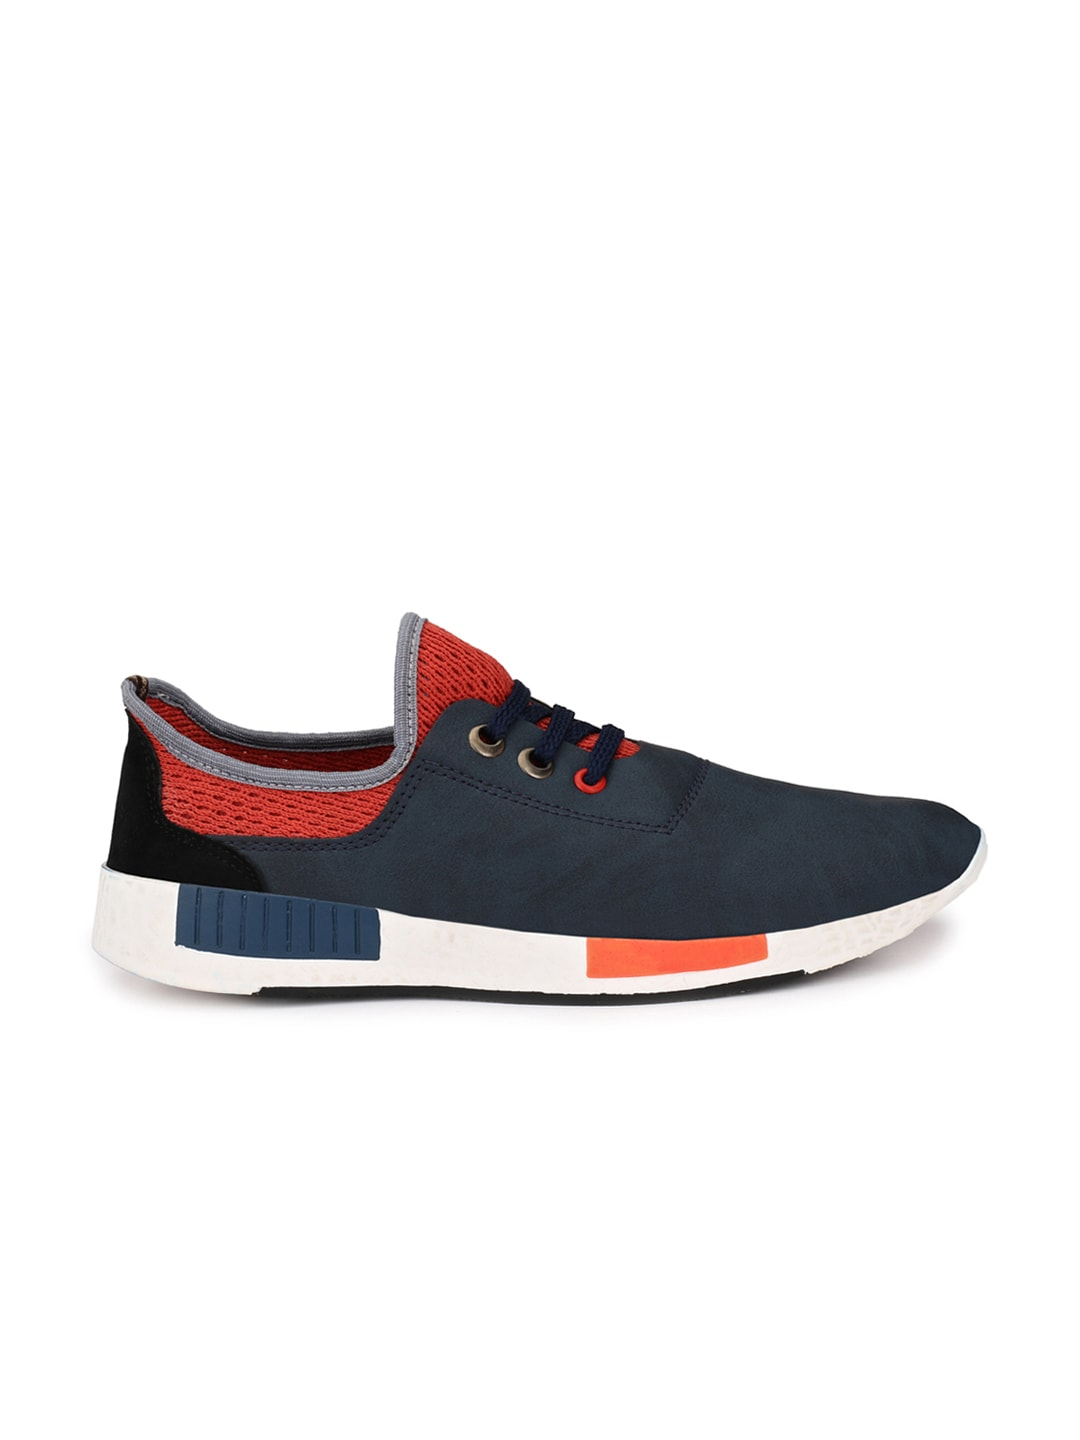 Puma Canvas Shoes Price